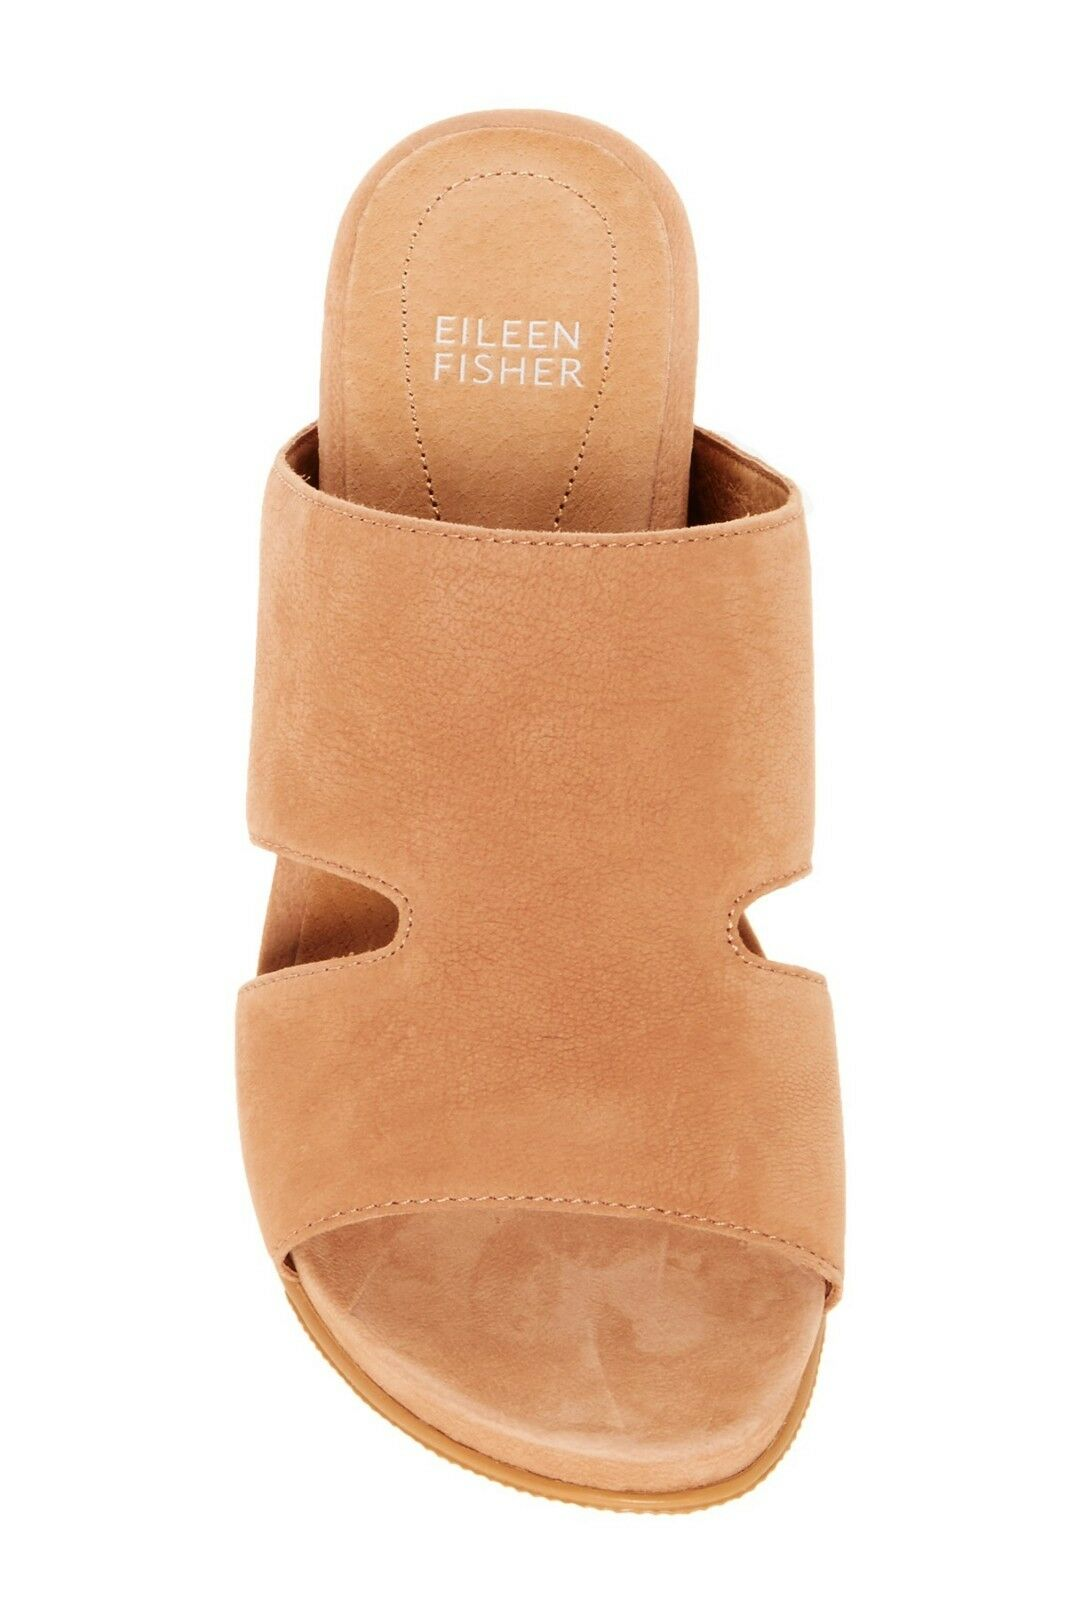 New Eileen Fisher  Art to to to Wear  Wheat Grand Platform Sporty Mule Clog 8 M 13534d